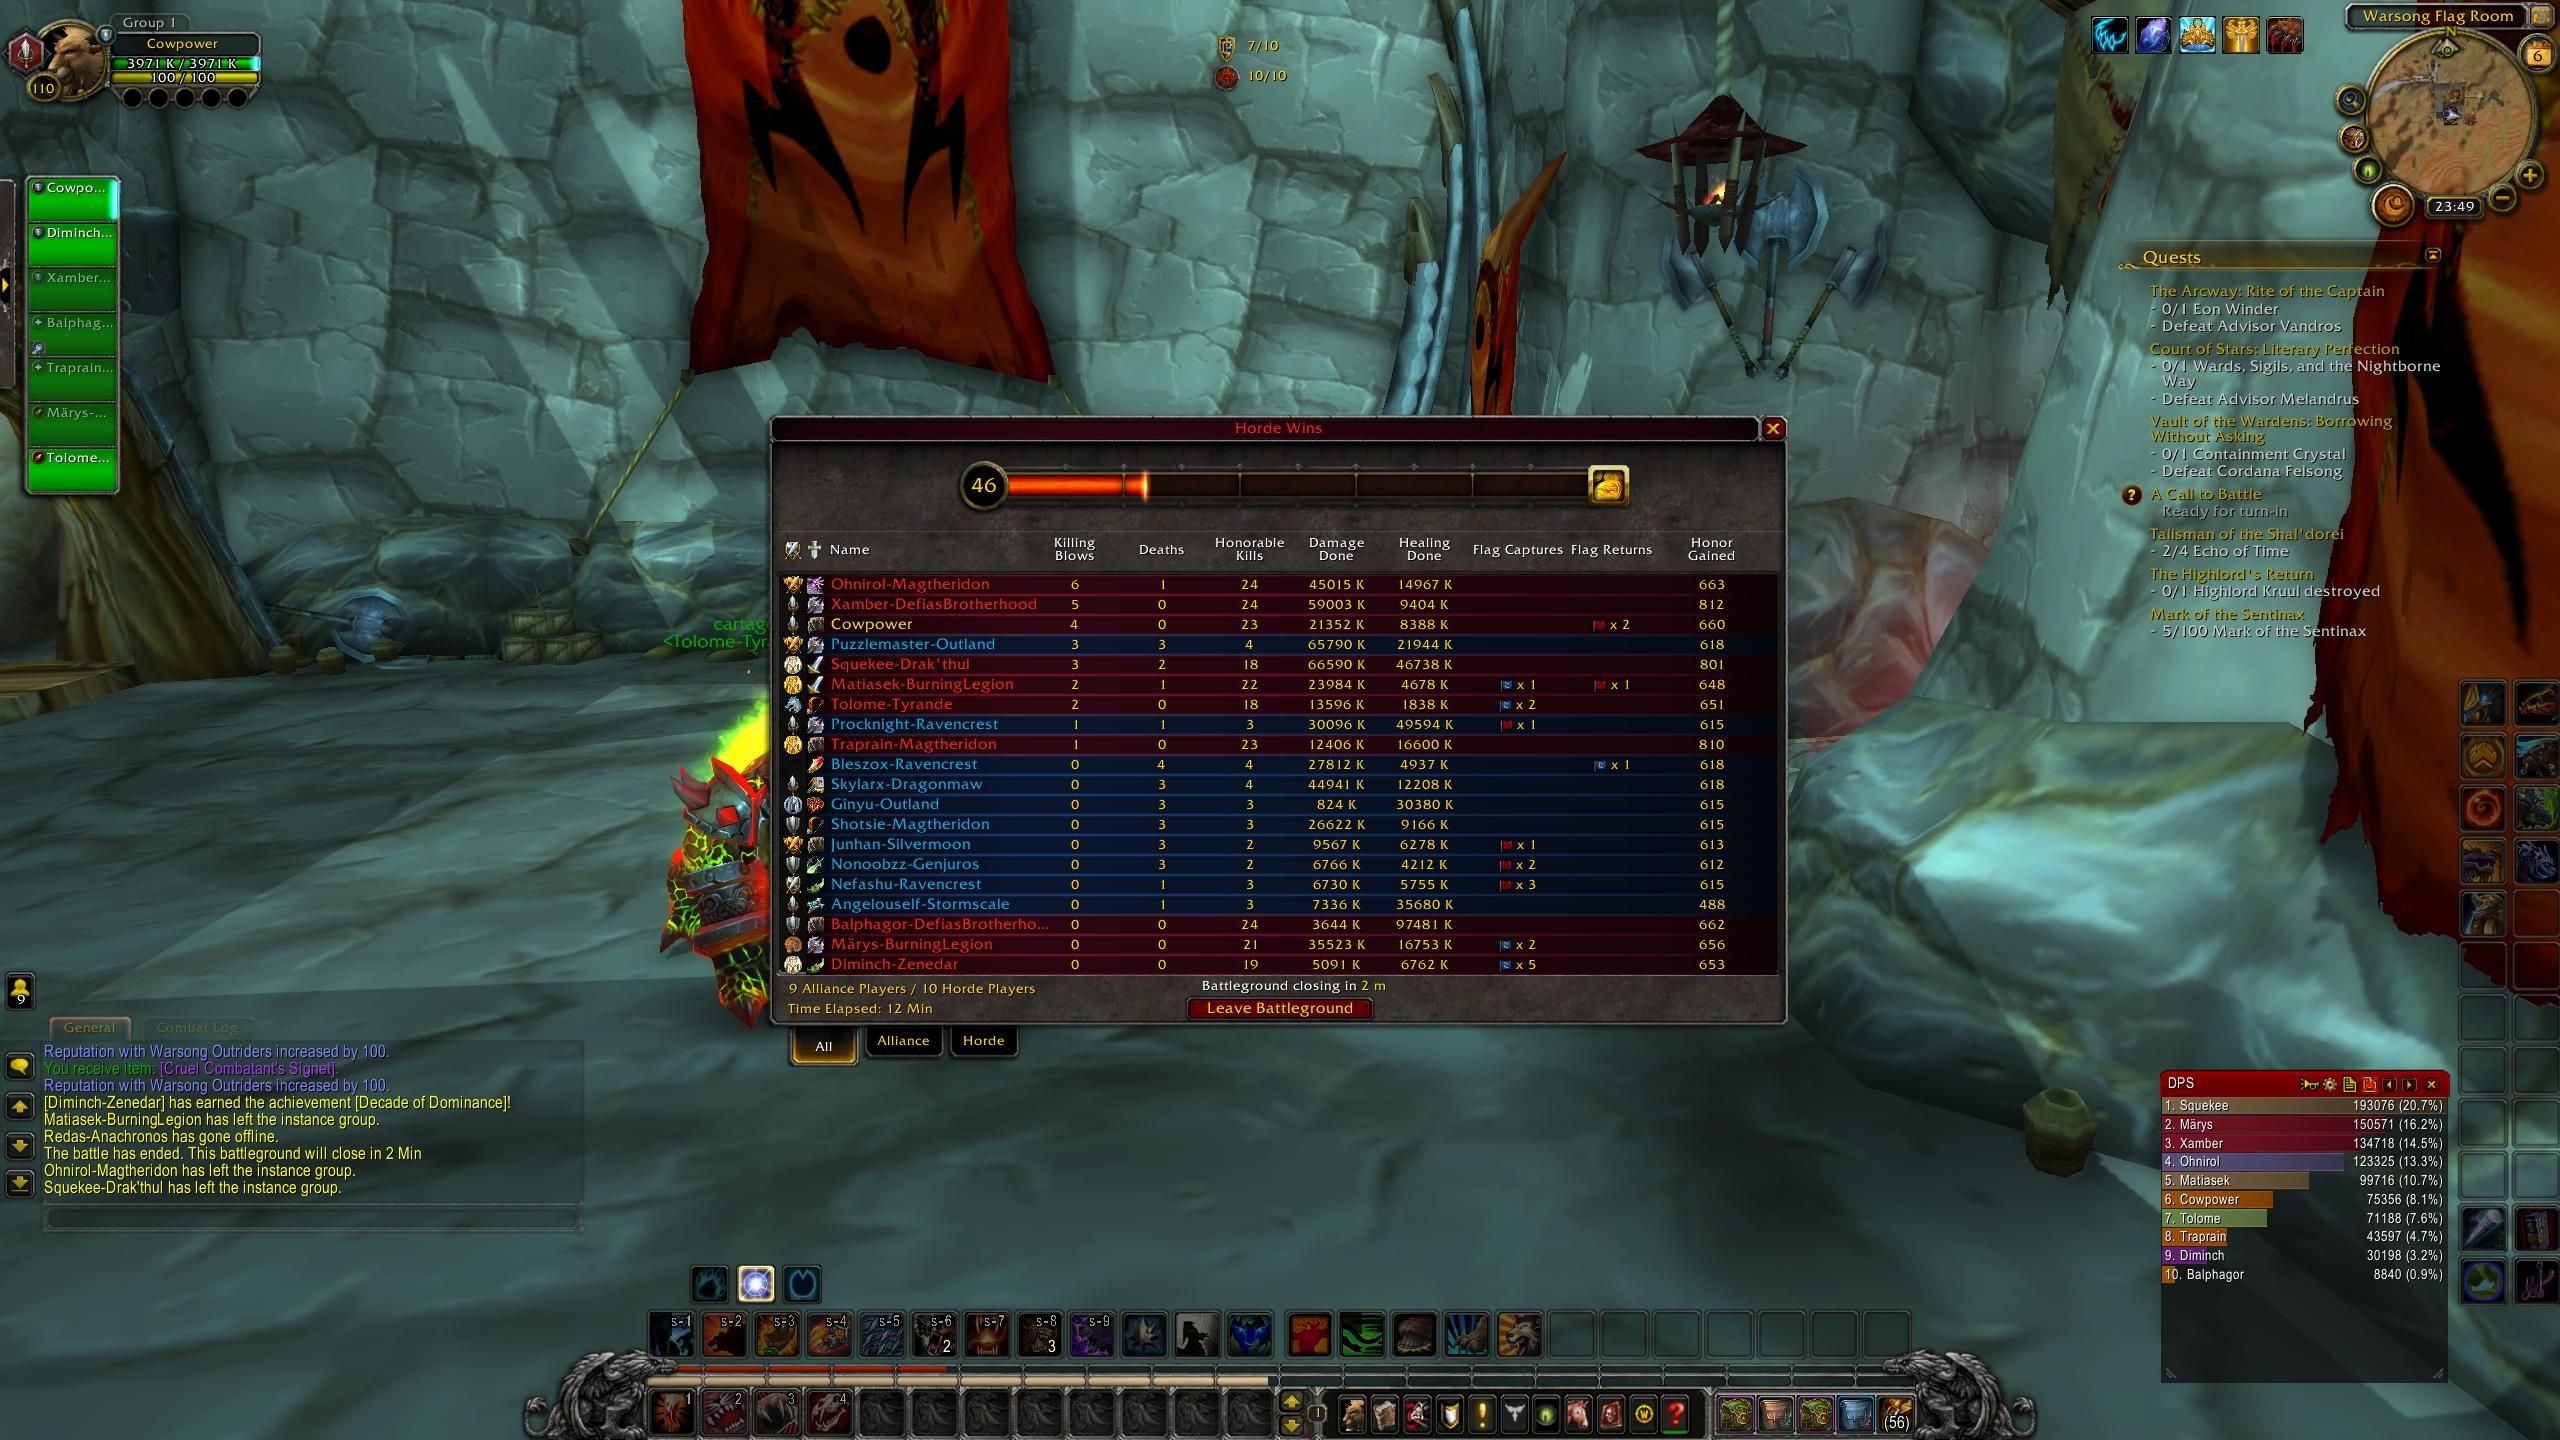 As someone who doesn't do much PvP because they are a tank and can never find a group because of that this may be my proudest BG moment #worldofwarcraft #blizzard #Hearthstone #wow #Warcraft #BlizzardCS #gaming